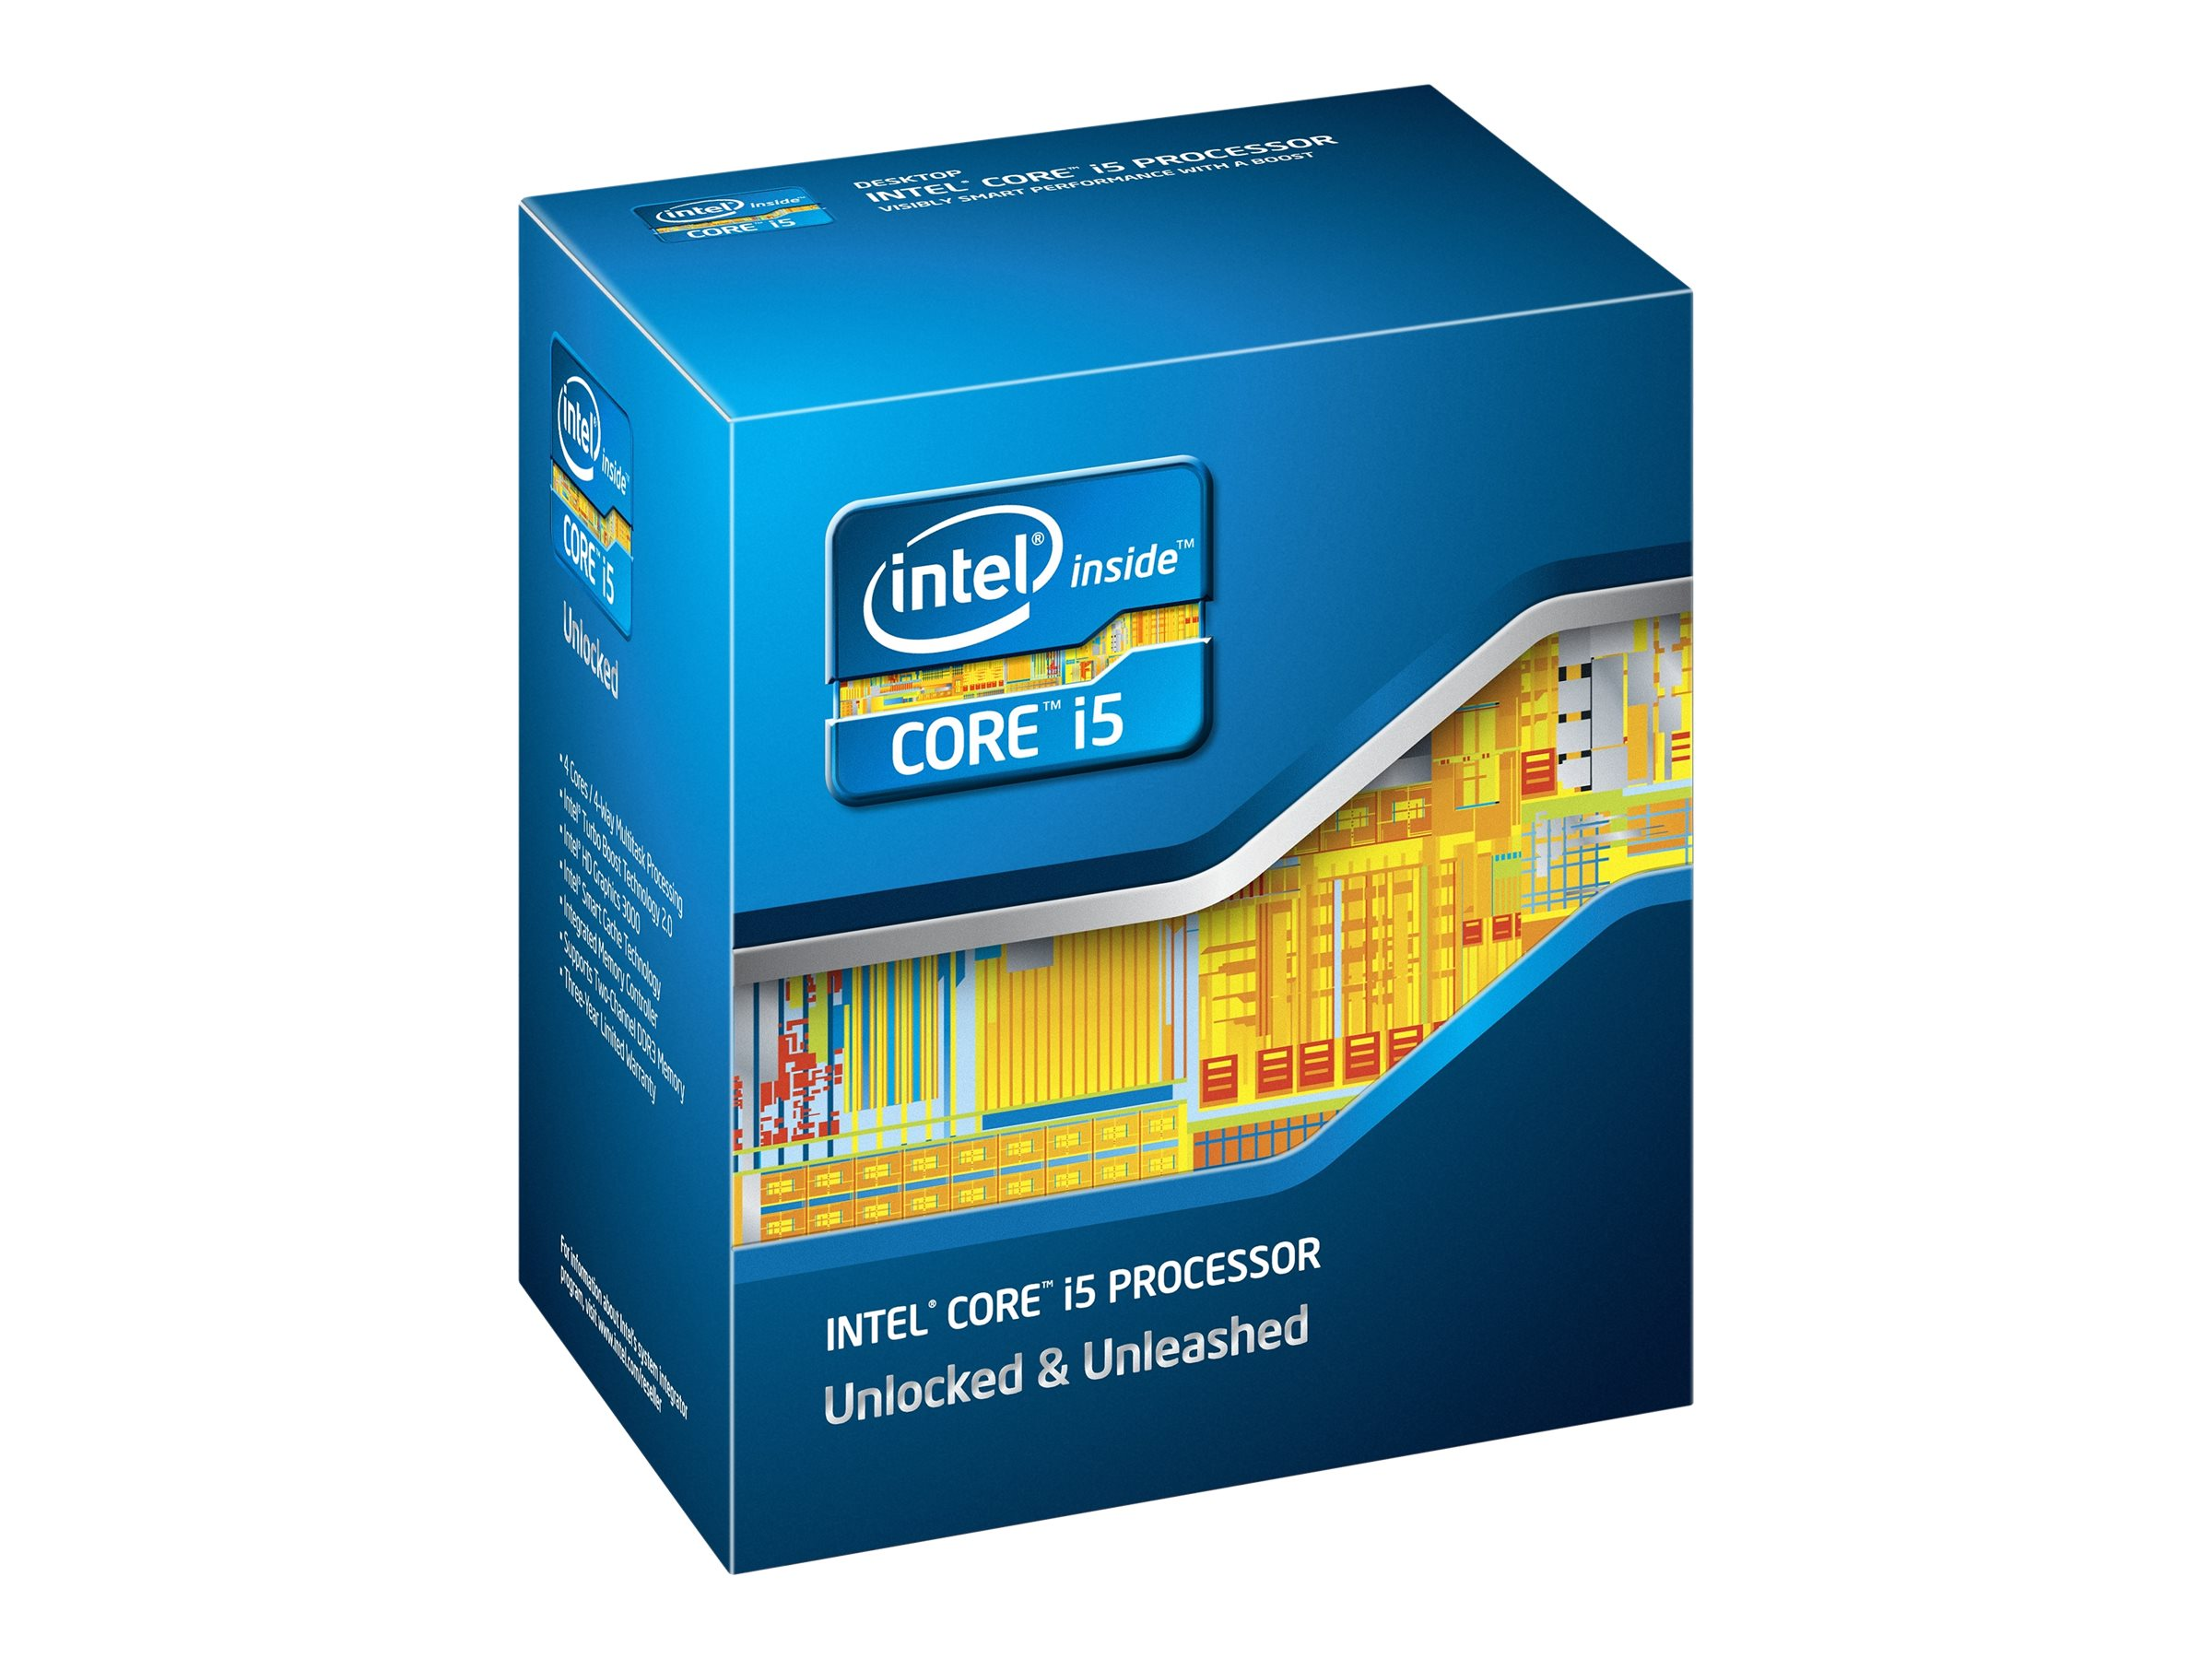 Intel Processor, Core i5-2380P 3.1GHz 6MB 95W